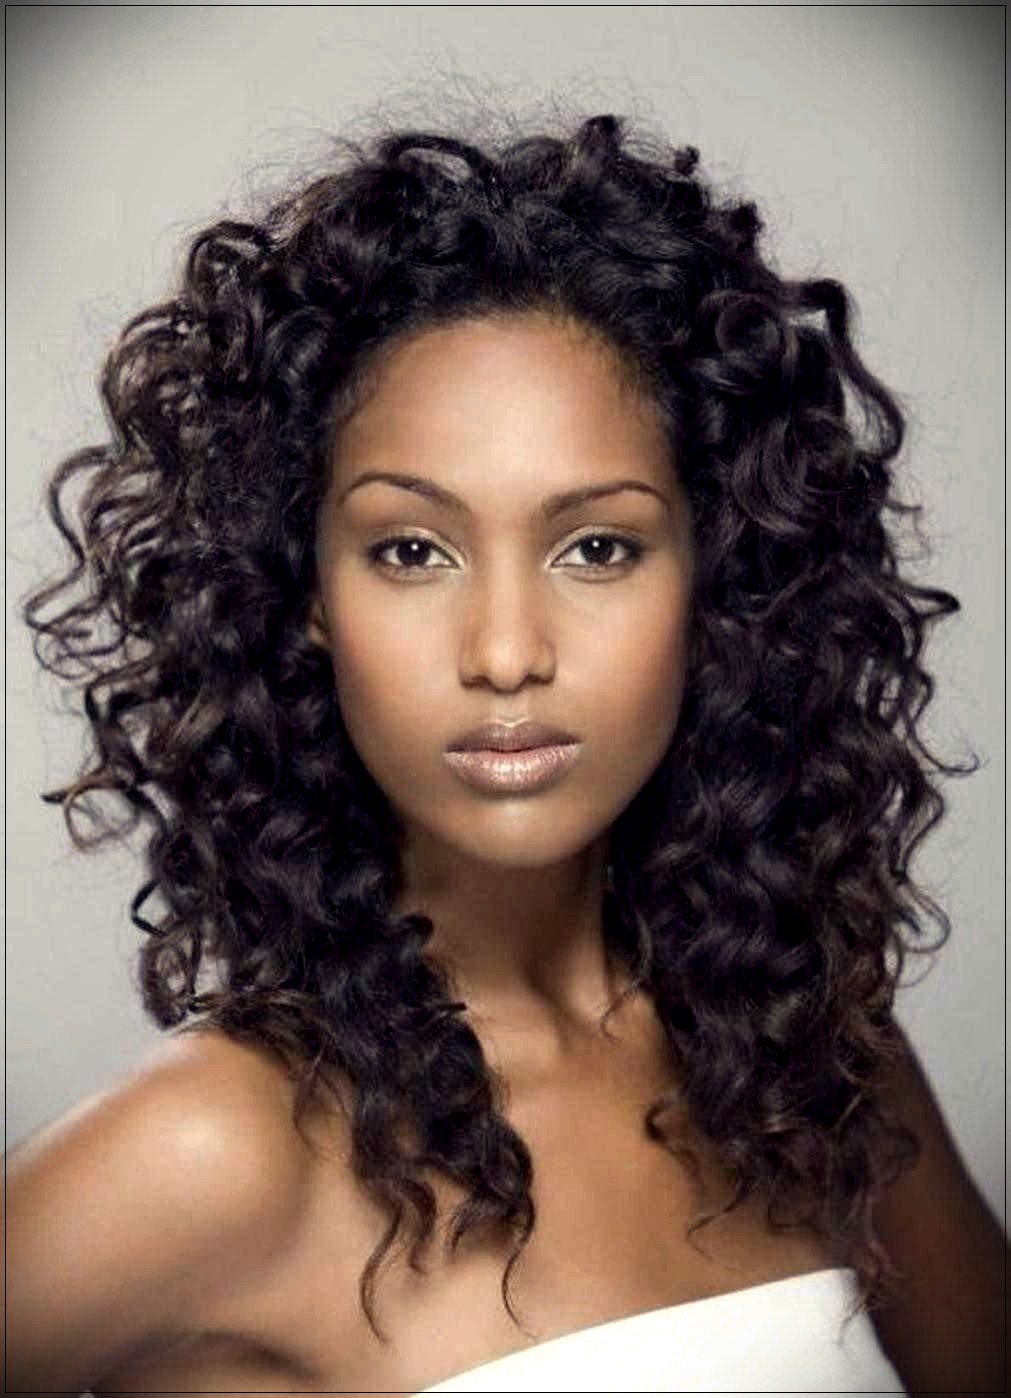 Layered Curly Hair Ideas For 2018 8 Short And Curly Haircuts